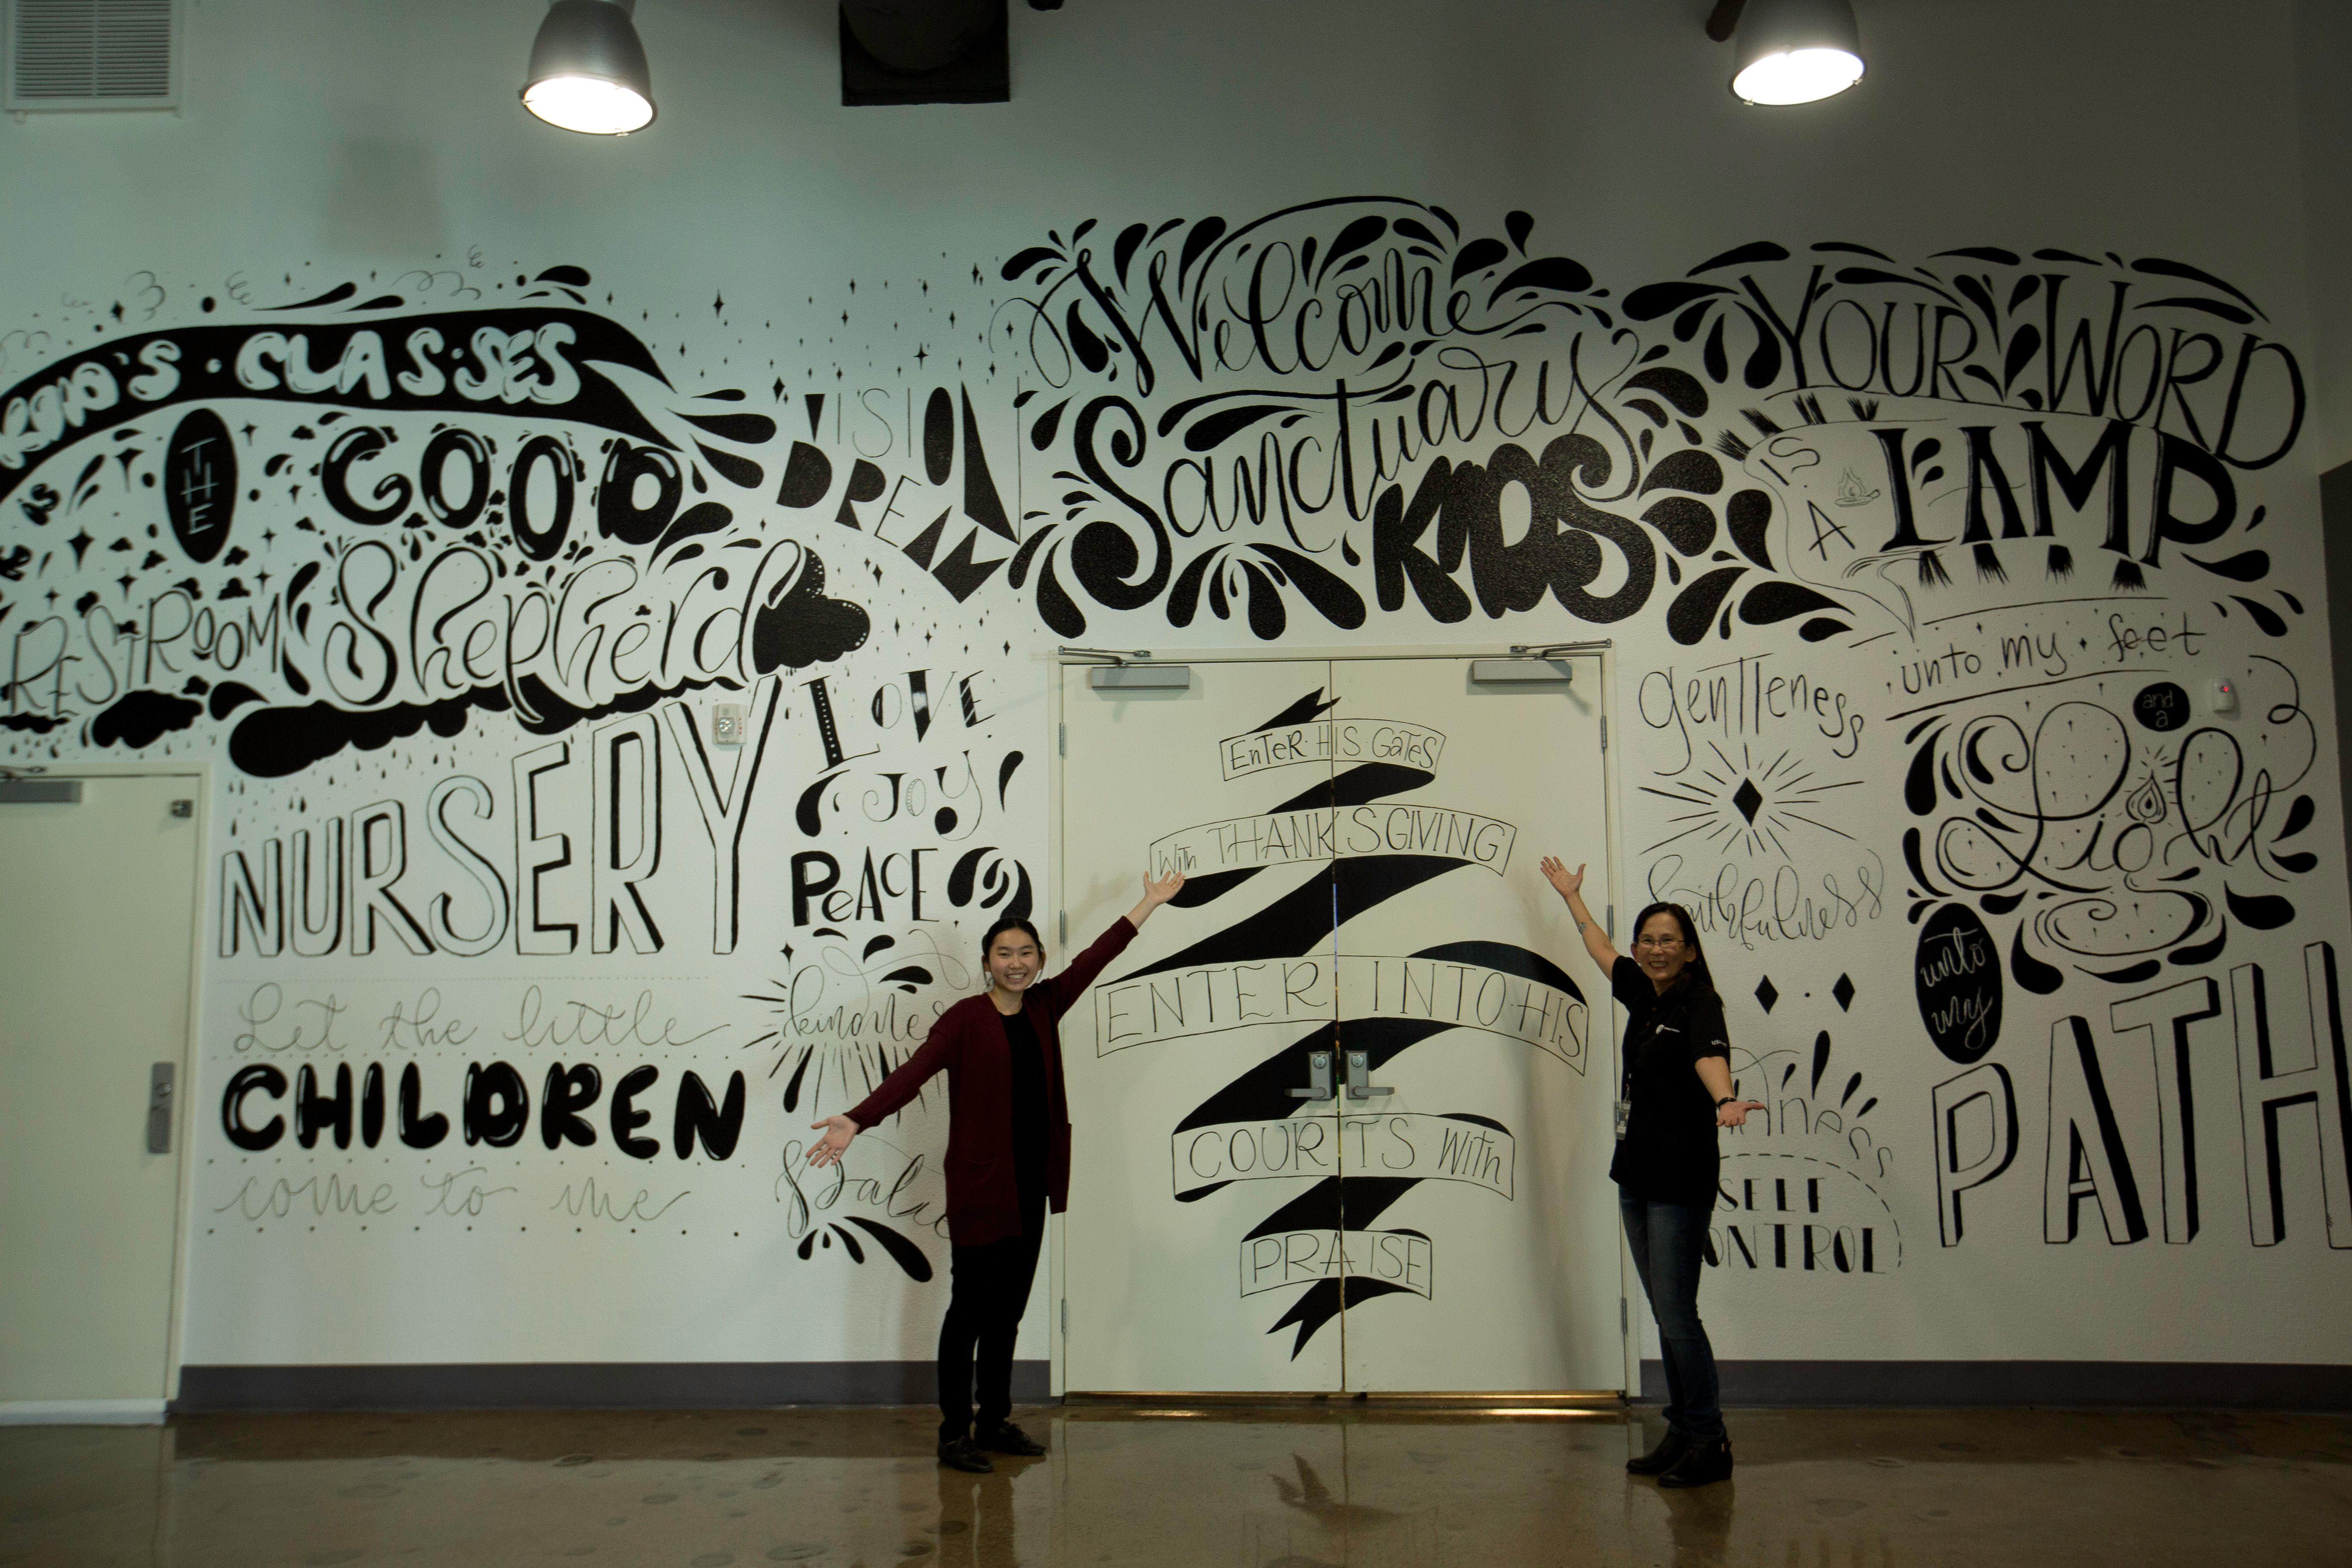 Services for Mural lettering